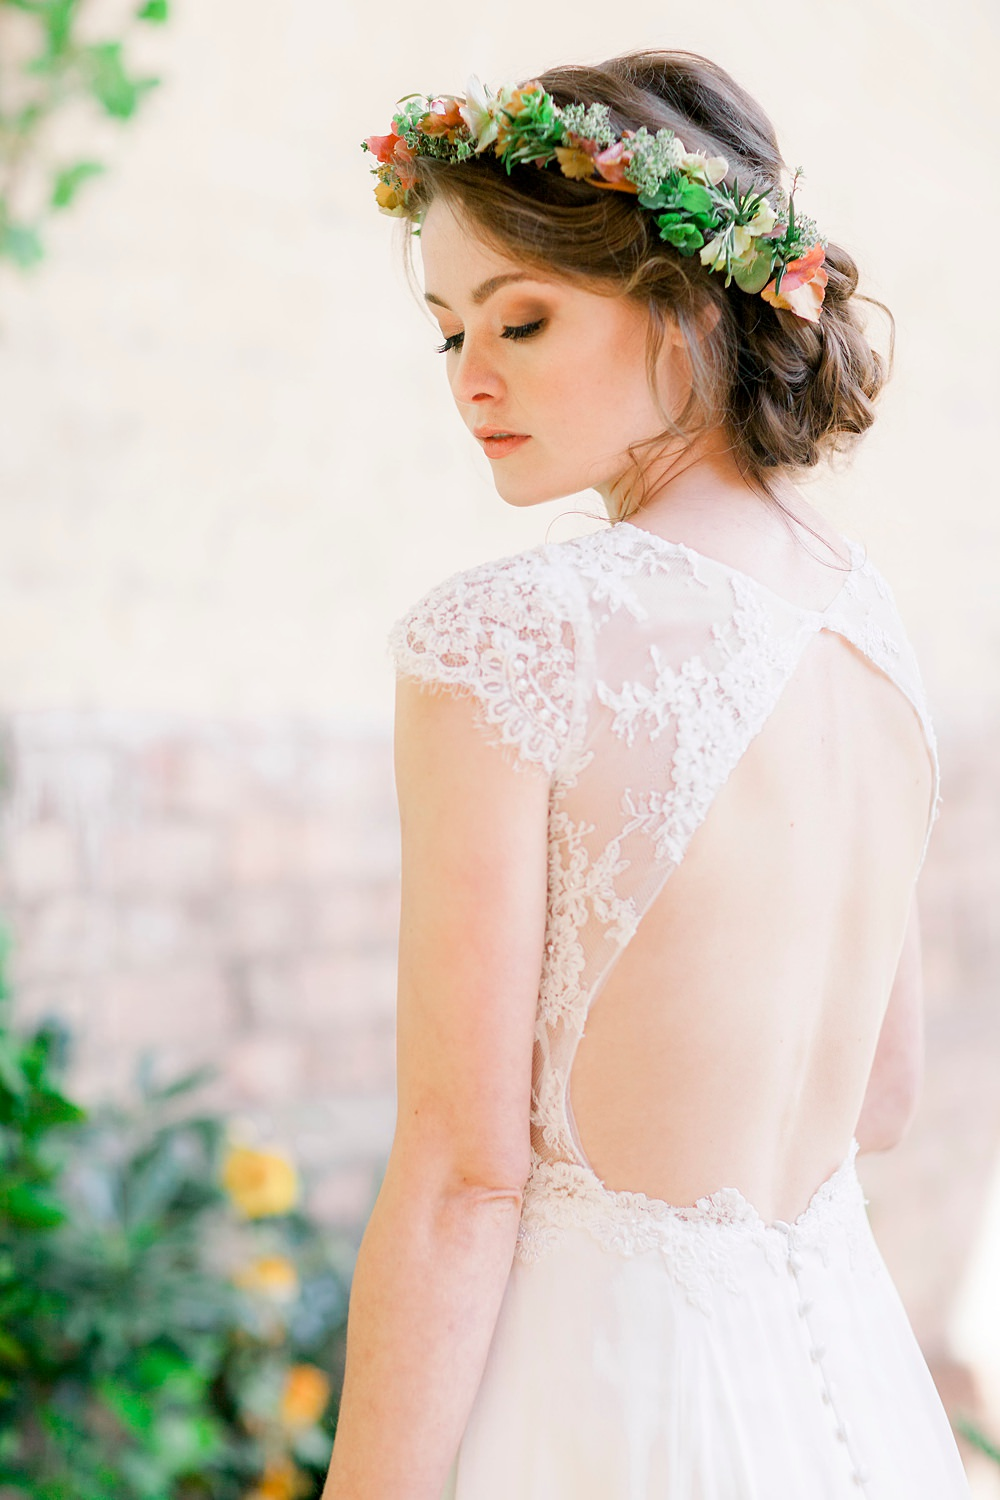 Dress Gown Bride Bridal Stelfox Bride Lace Open Back Natural Boho Industrial Wedding Ideas Jo Bradbury Photography